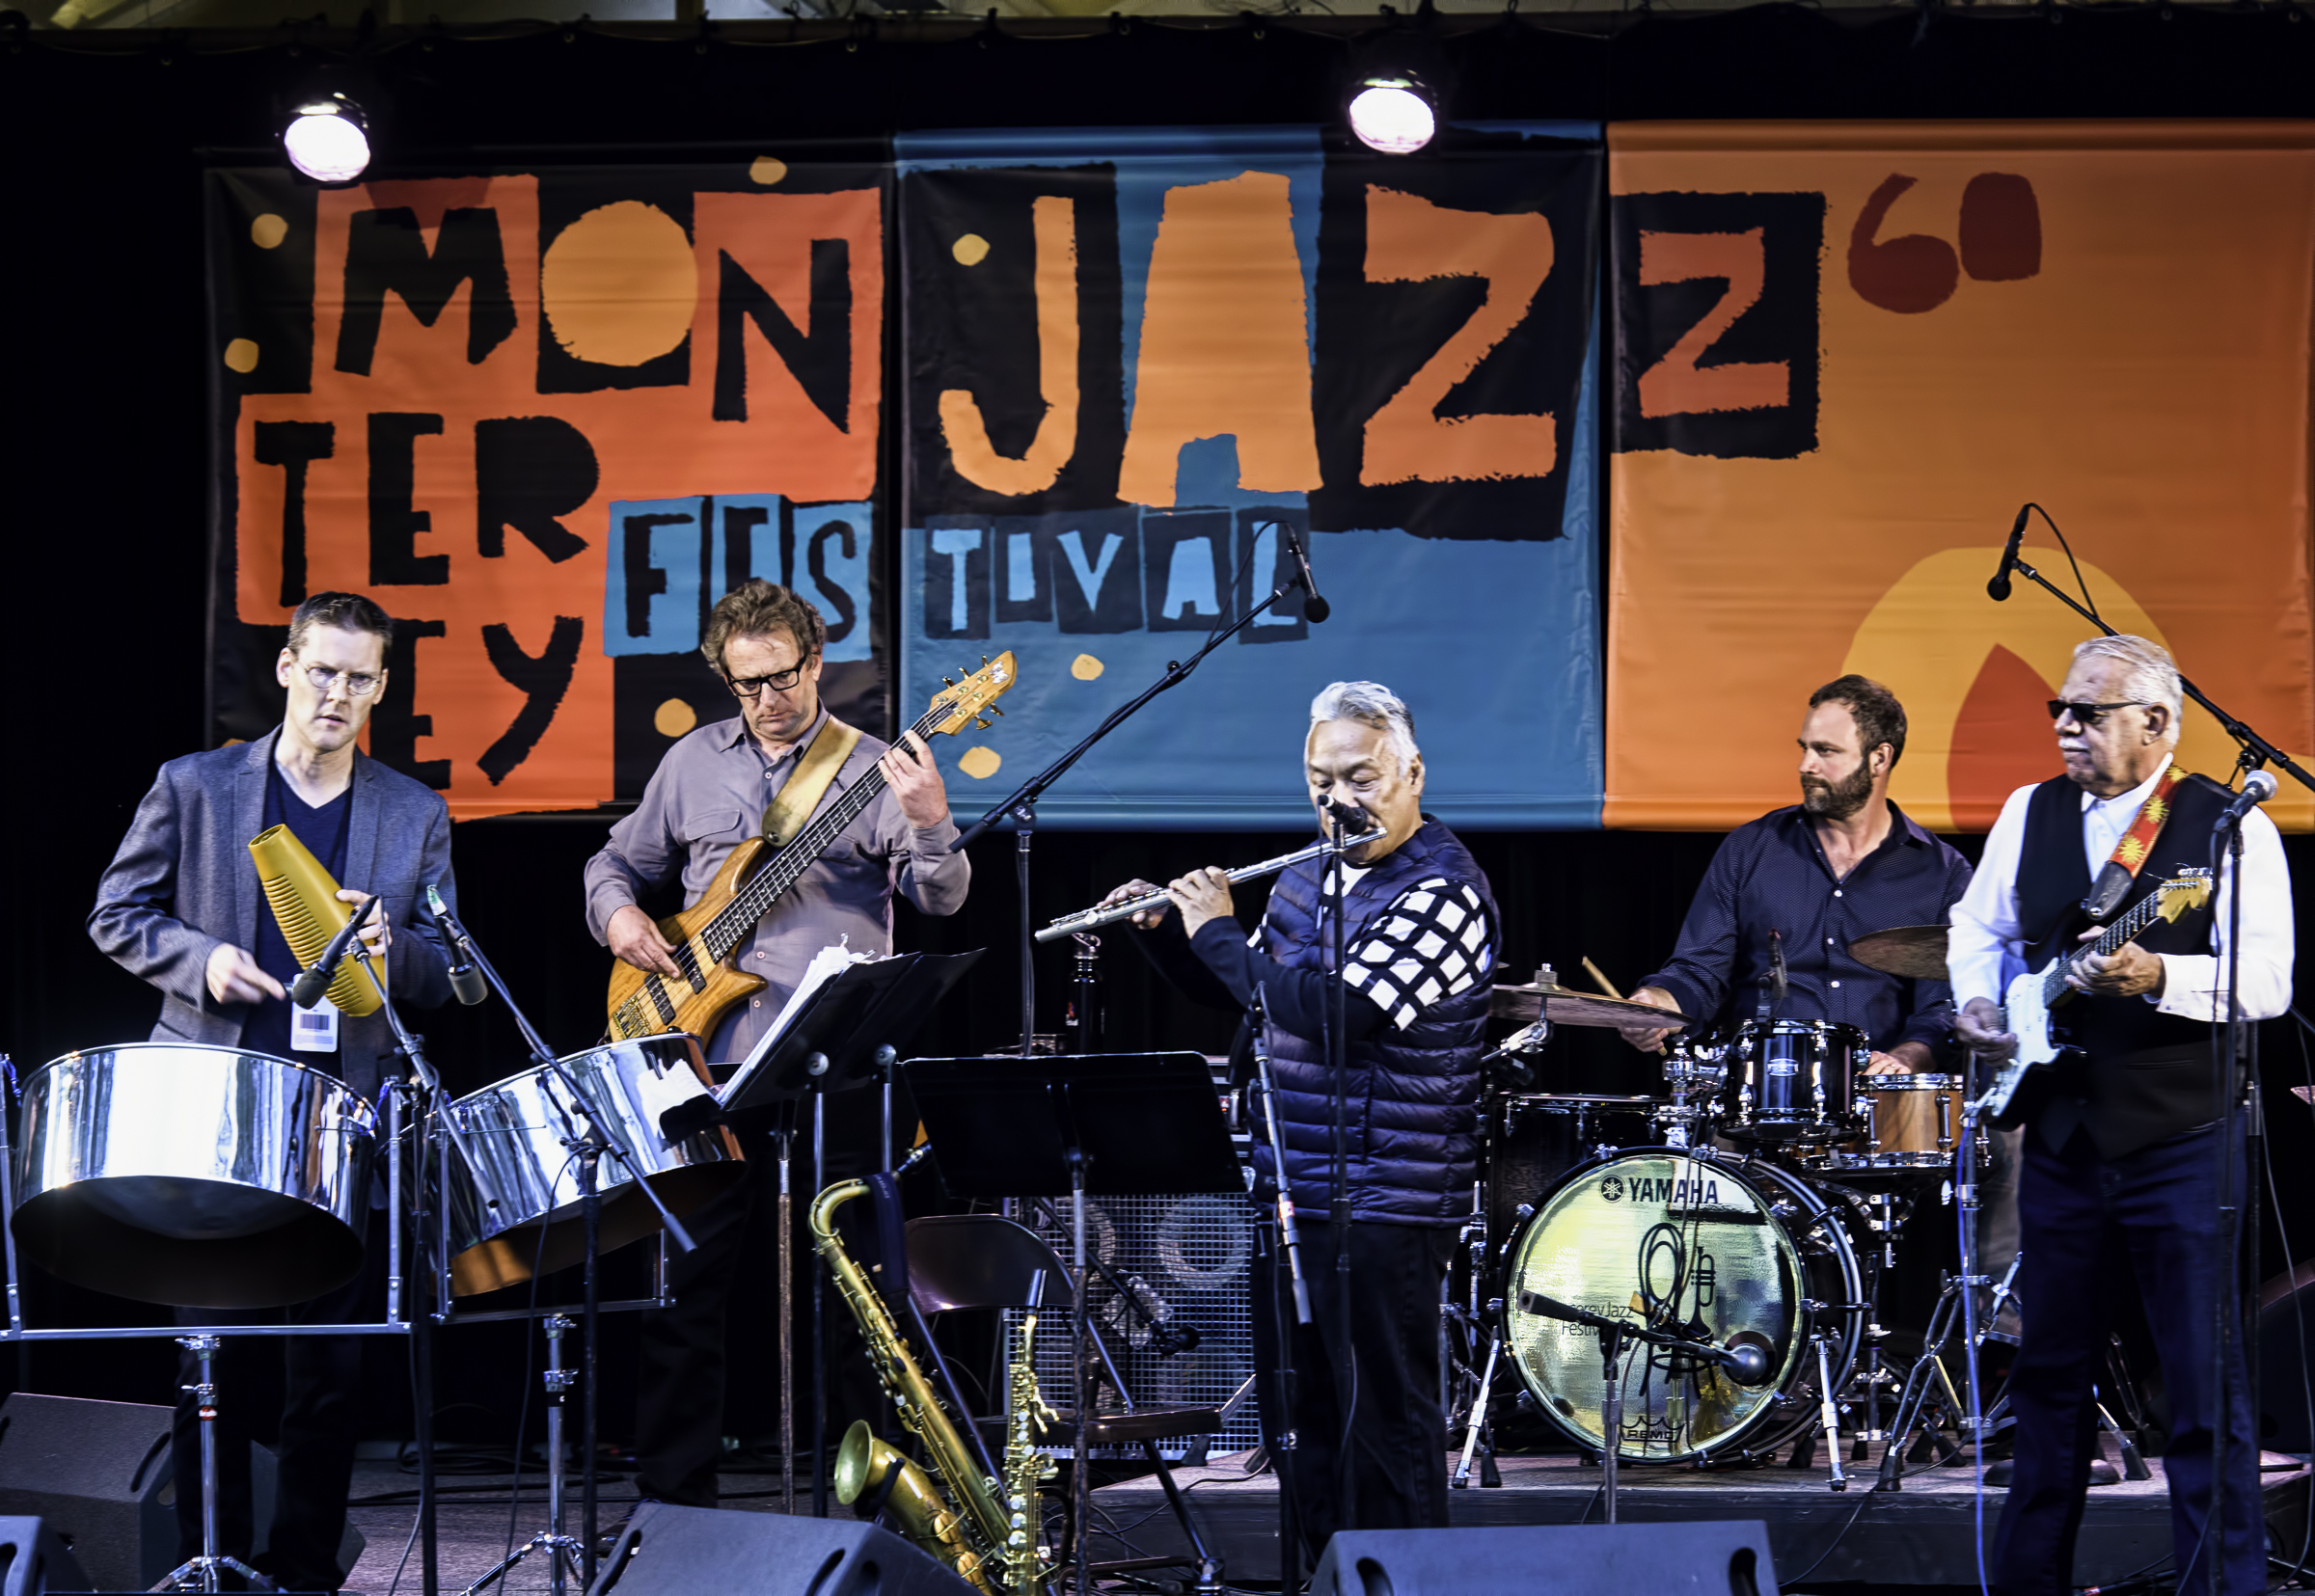 Phil Hawkins, Marc van Wageningen, Melecio Magdaluyo, Colin Douglas and Ray Obiedo with the Latin Jazz Project at the Monterey Jazz Festival